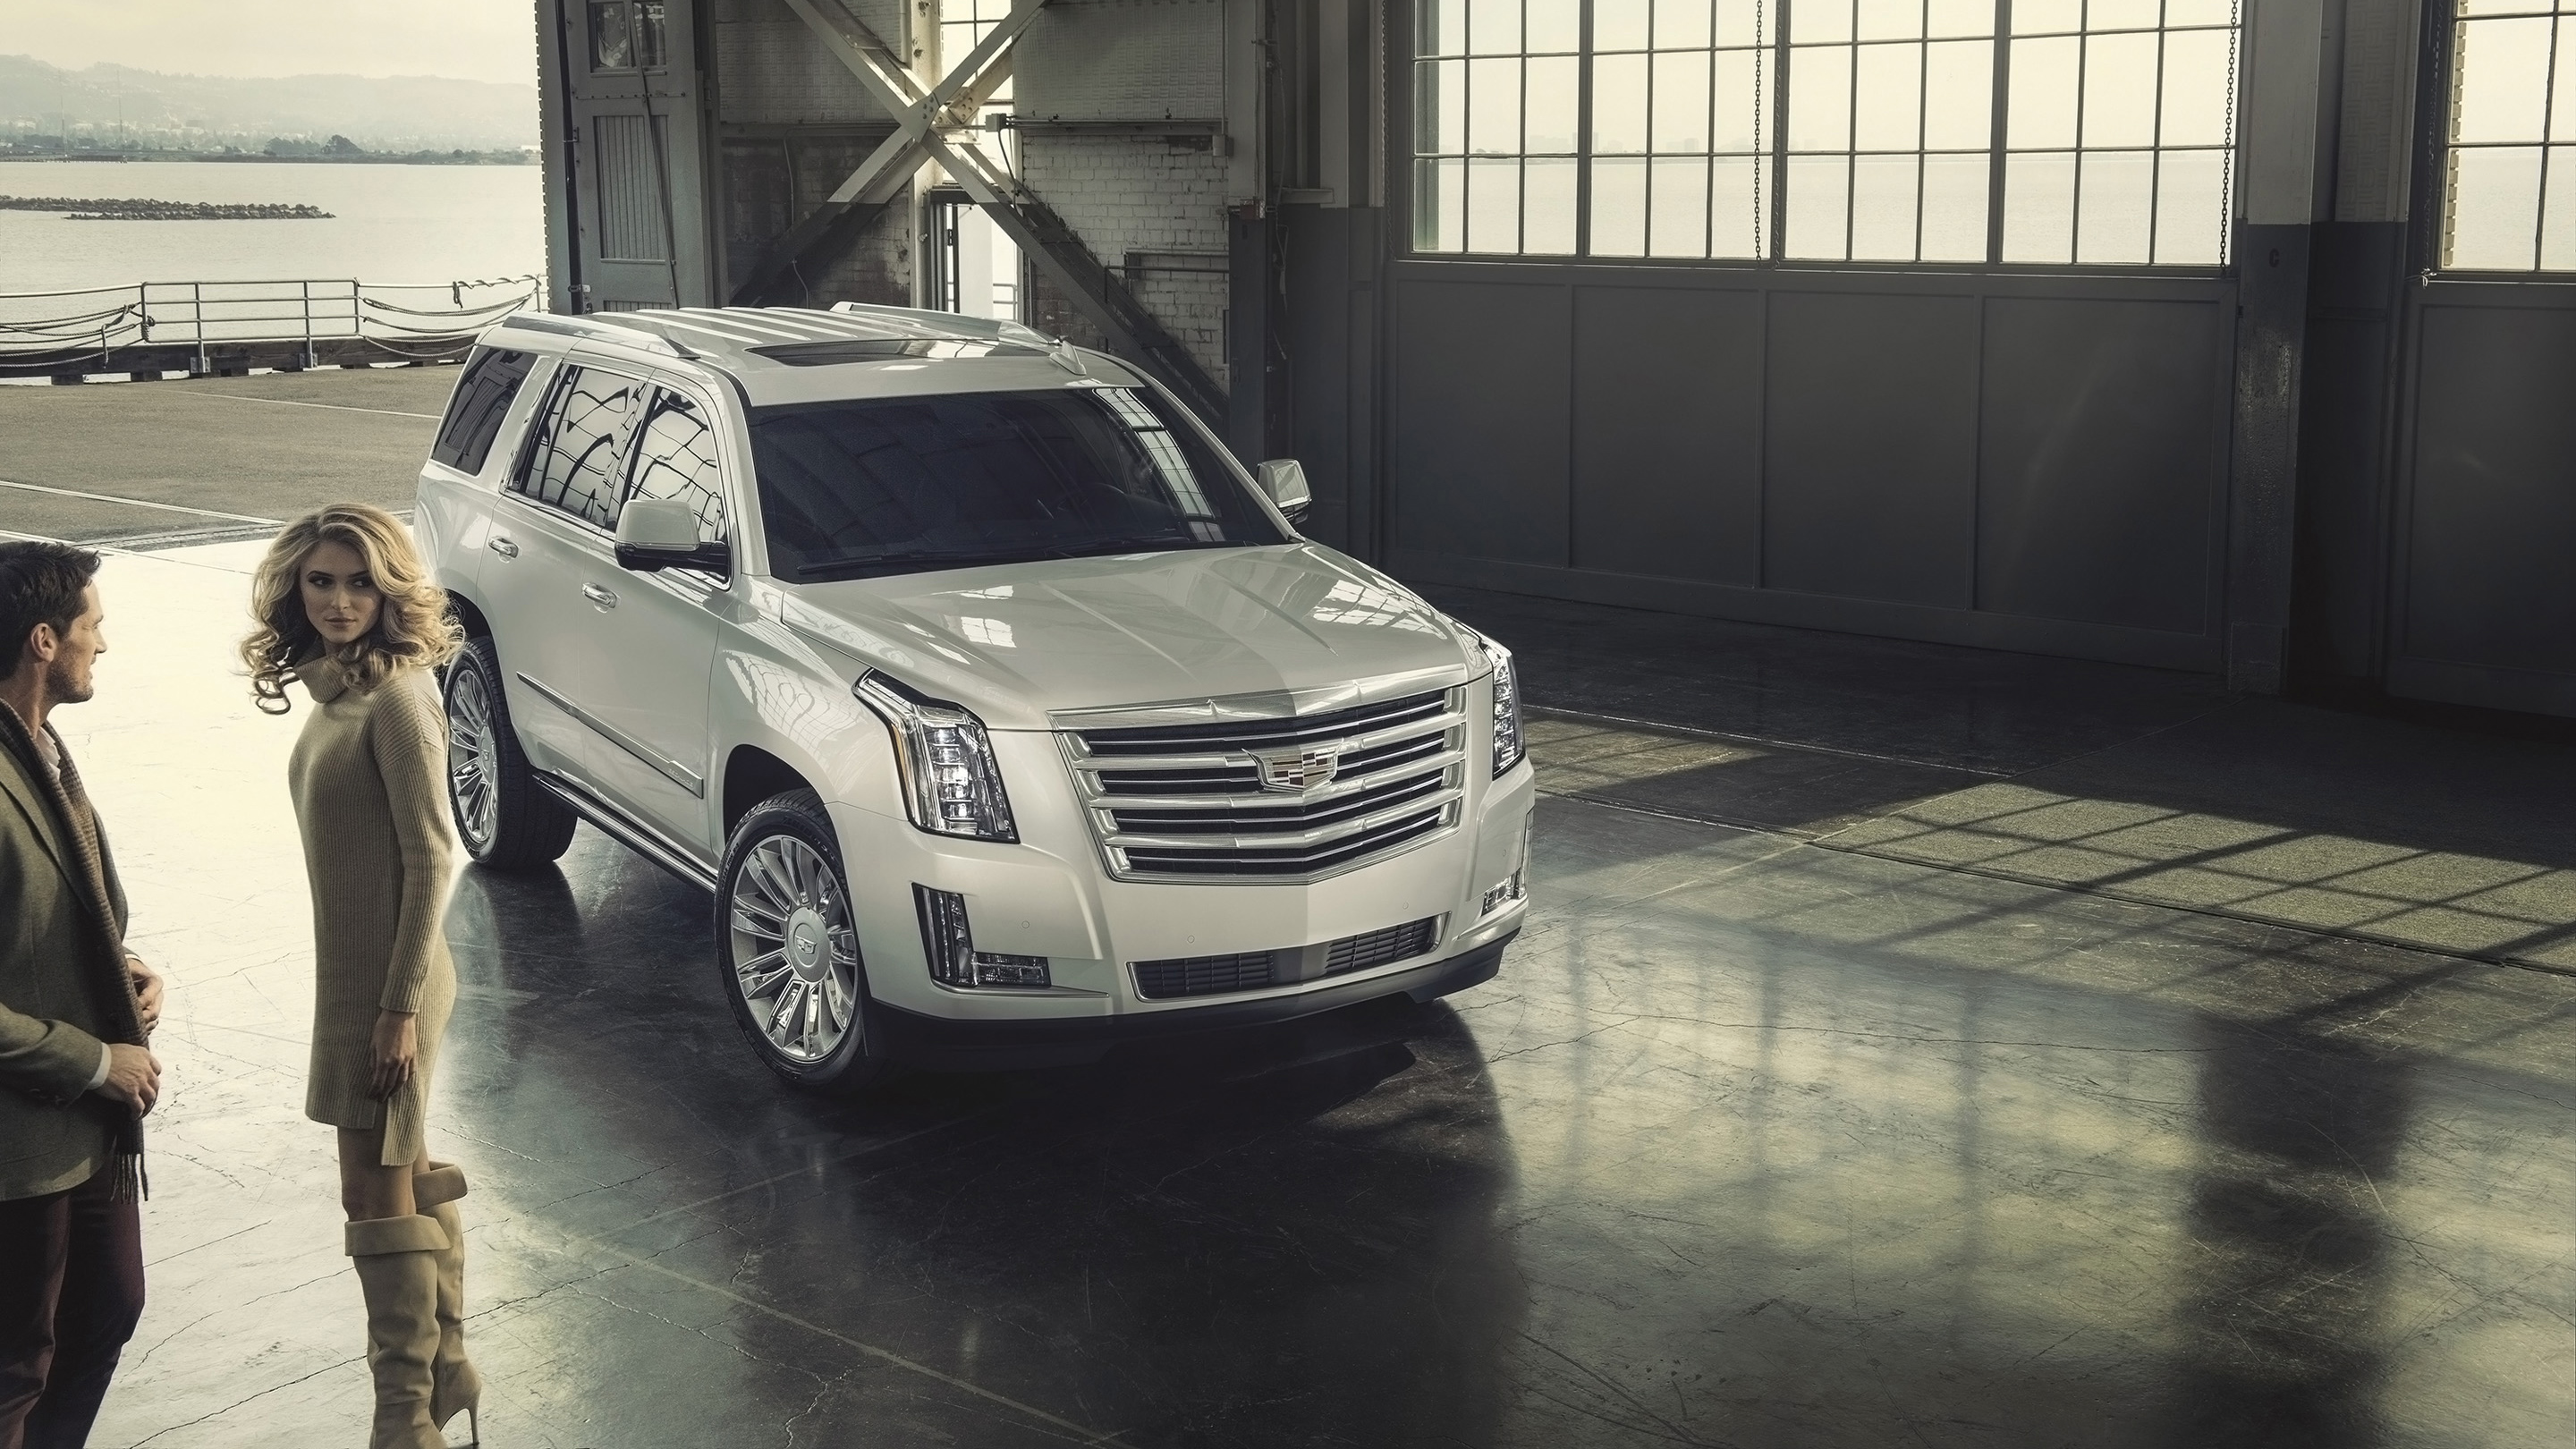 Latest Cadillac Escalade >> 2018 Cadillac Escalade Wallpaper | HD Car Wallpapers | ID #8856